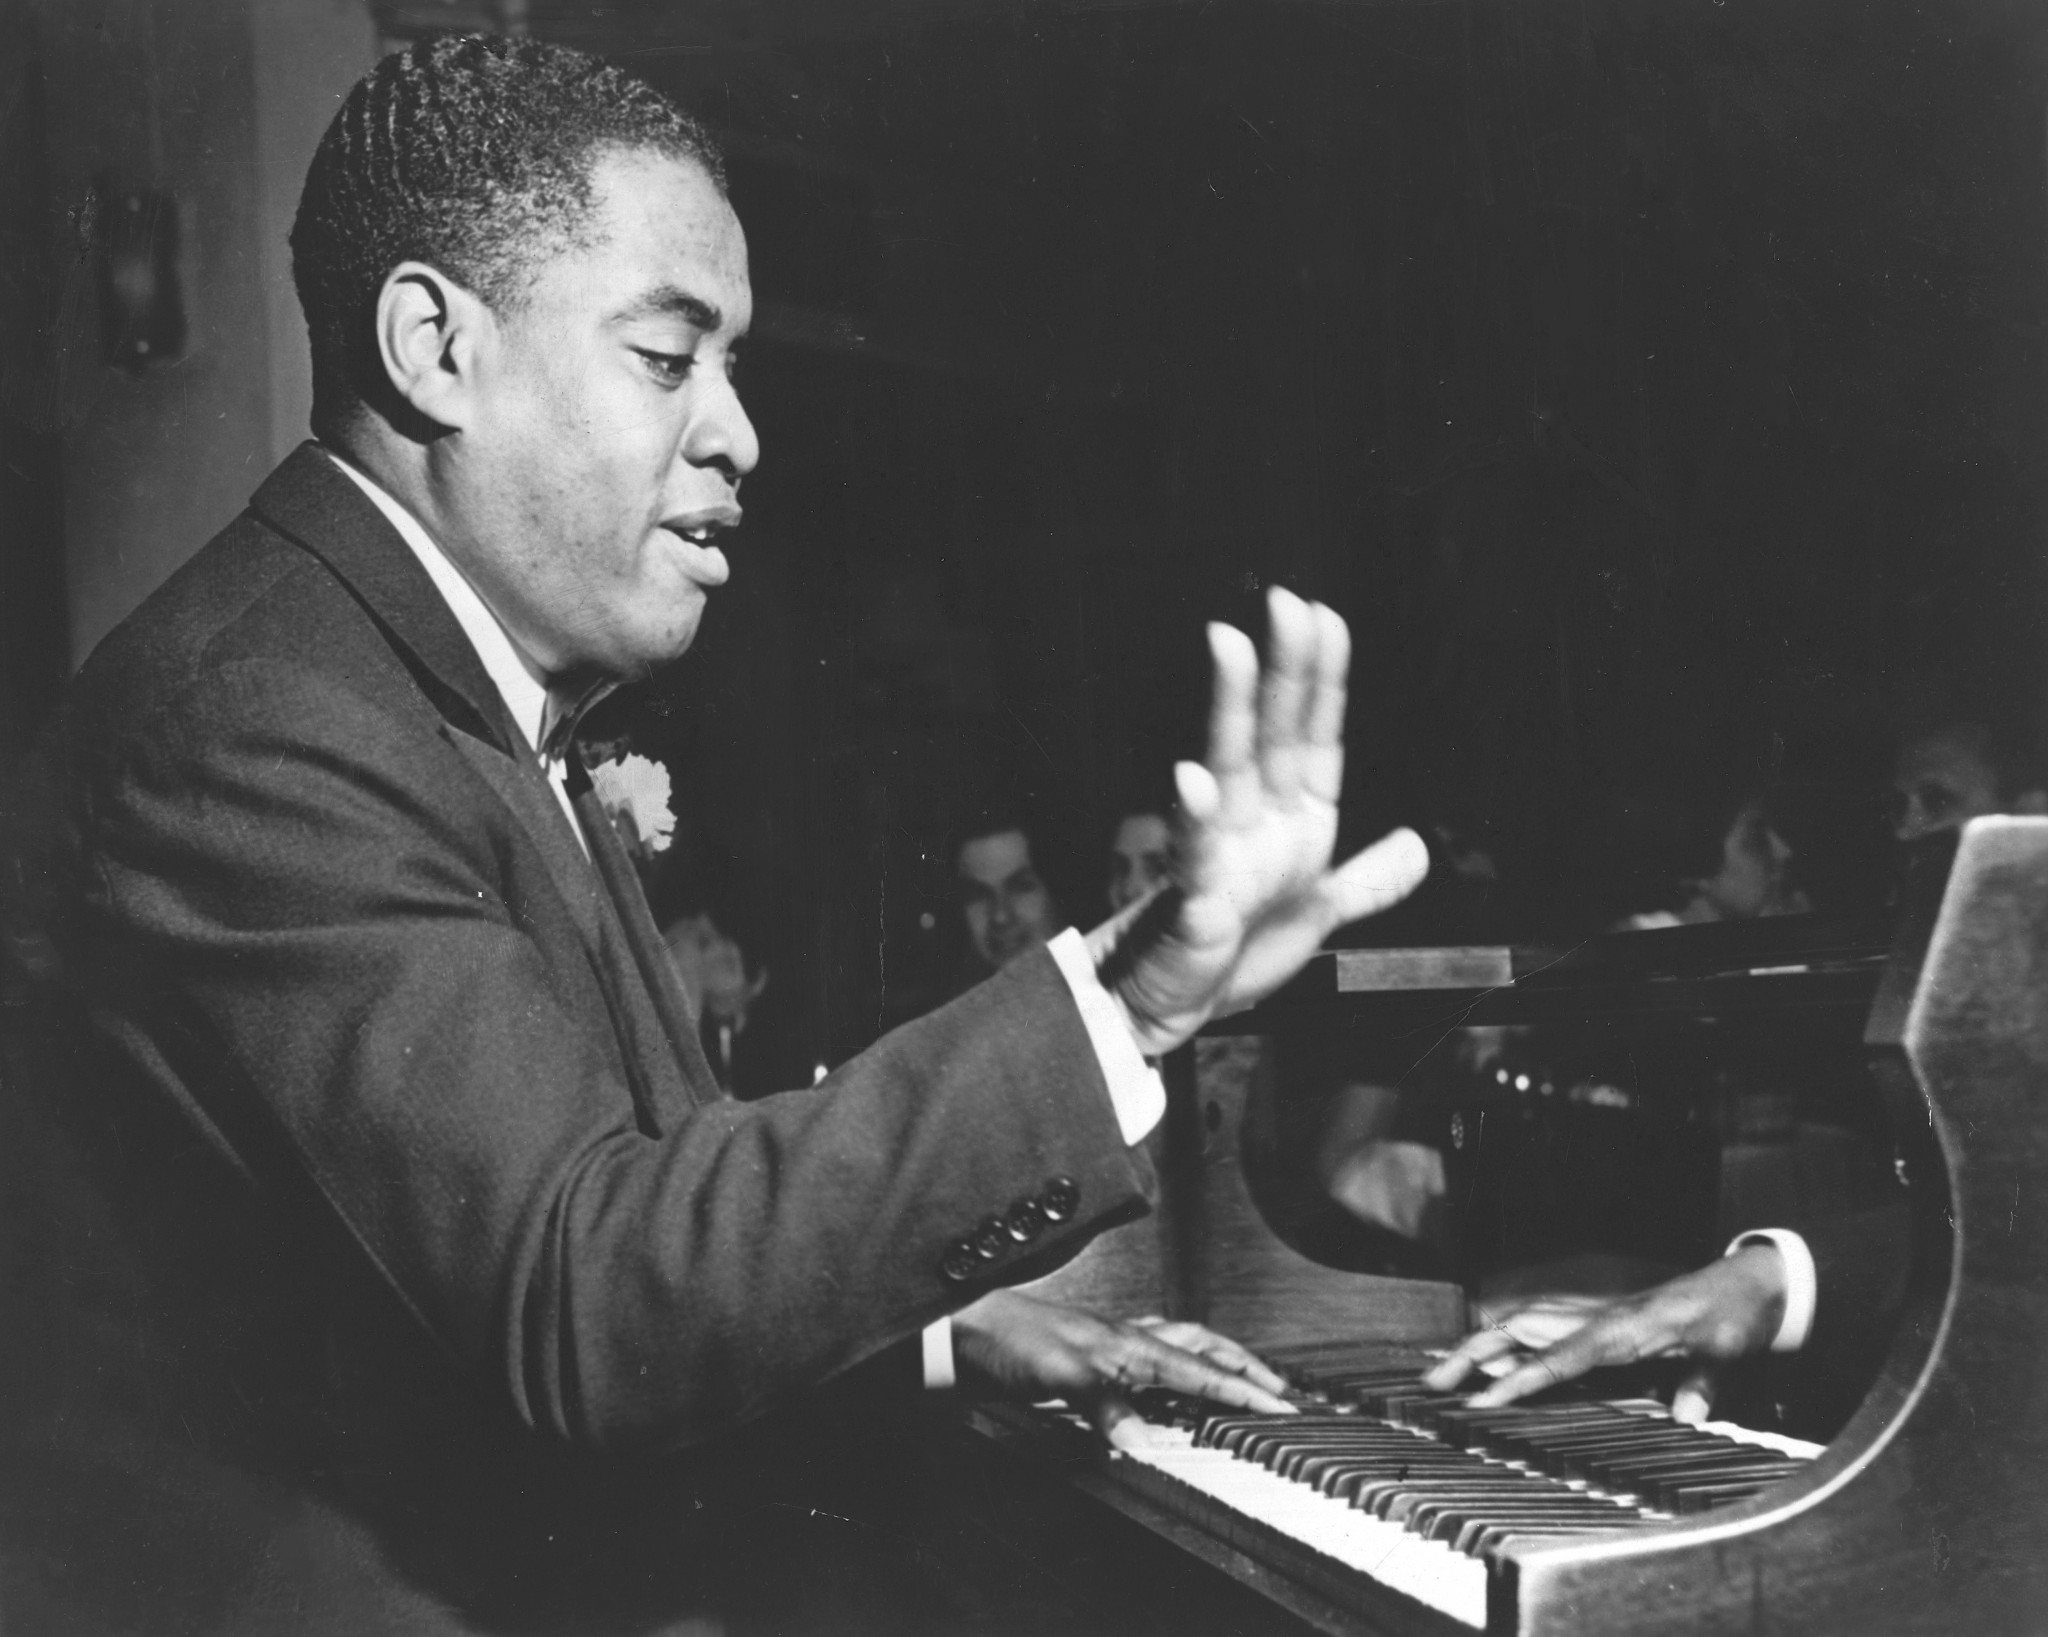 In celebration of jazz pianist Art Tatum's 110th birthday, The Arts Commission's November Art Loop will include performances by local and regional musicians. (Submitted photo)